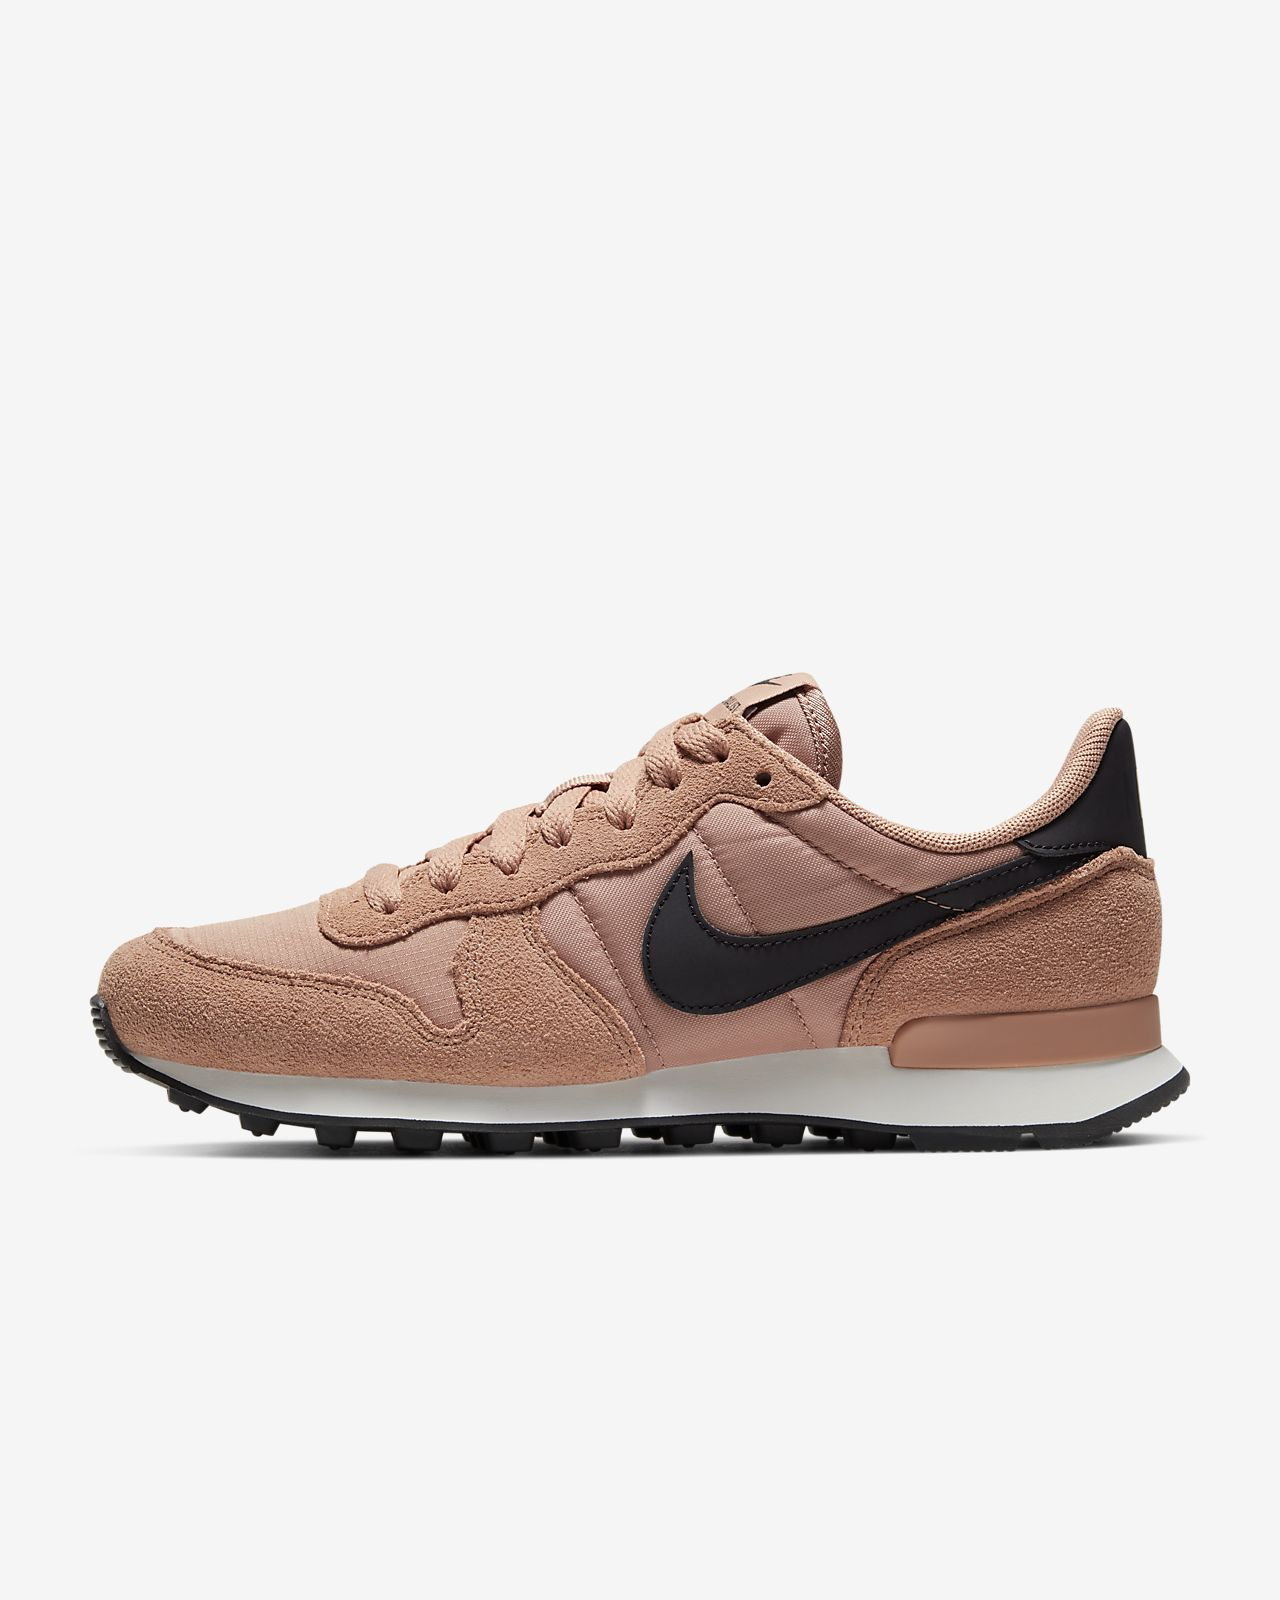 2e30ca9a517b9 Low Resolution Nike Internationalist Zapatillas - Mujer Nike  Internationalist Zapatillas - Mujer